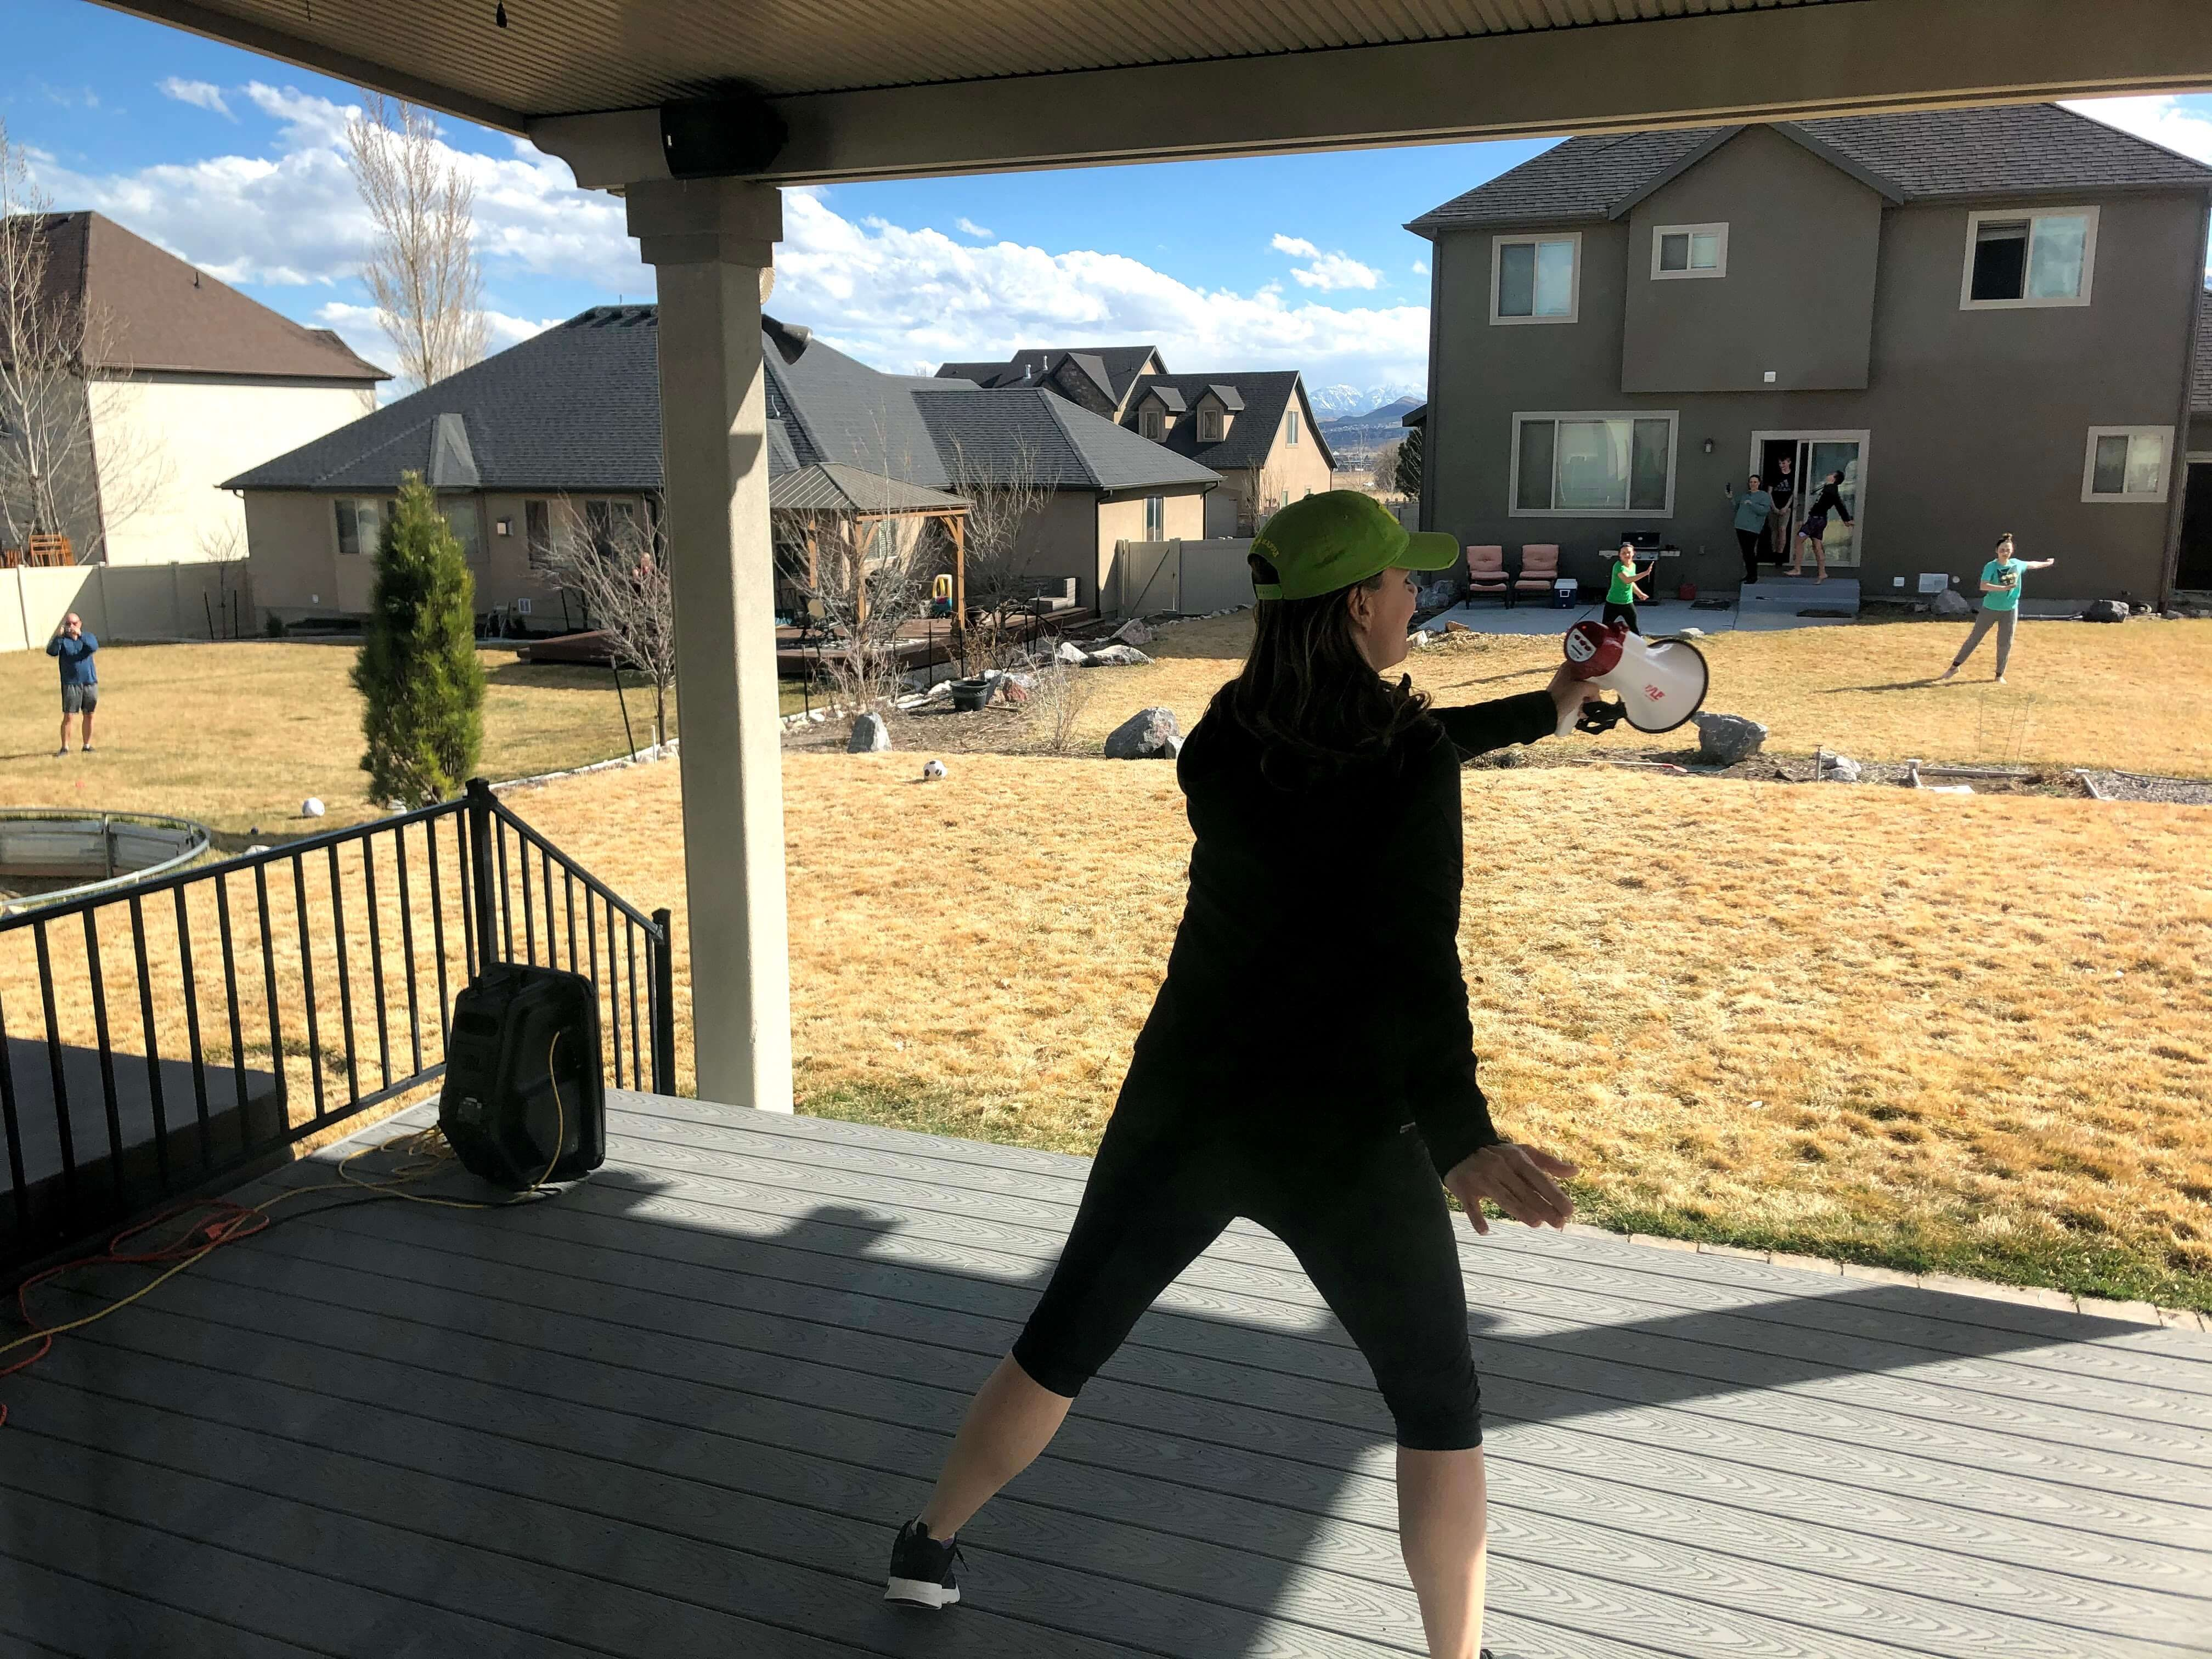 Woman exercising on her porch during COVID-19 pandemic quarantine period